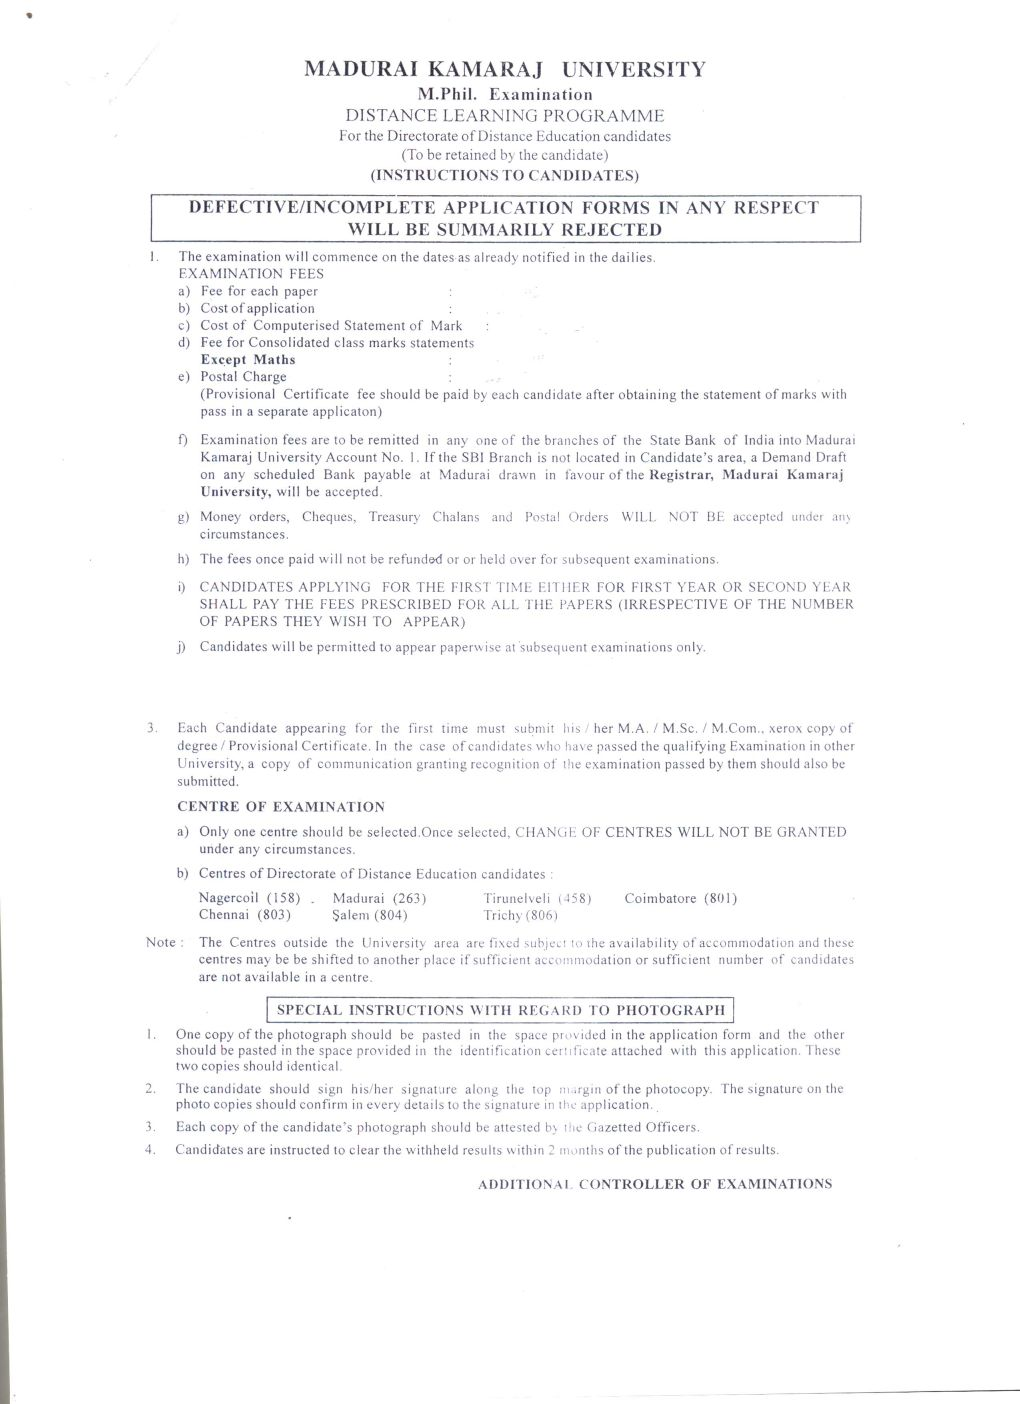 download cbu application form for 2015 academic year